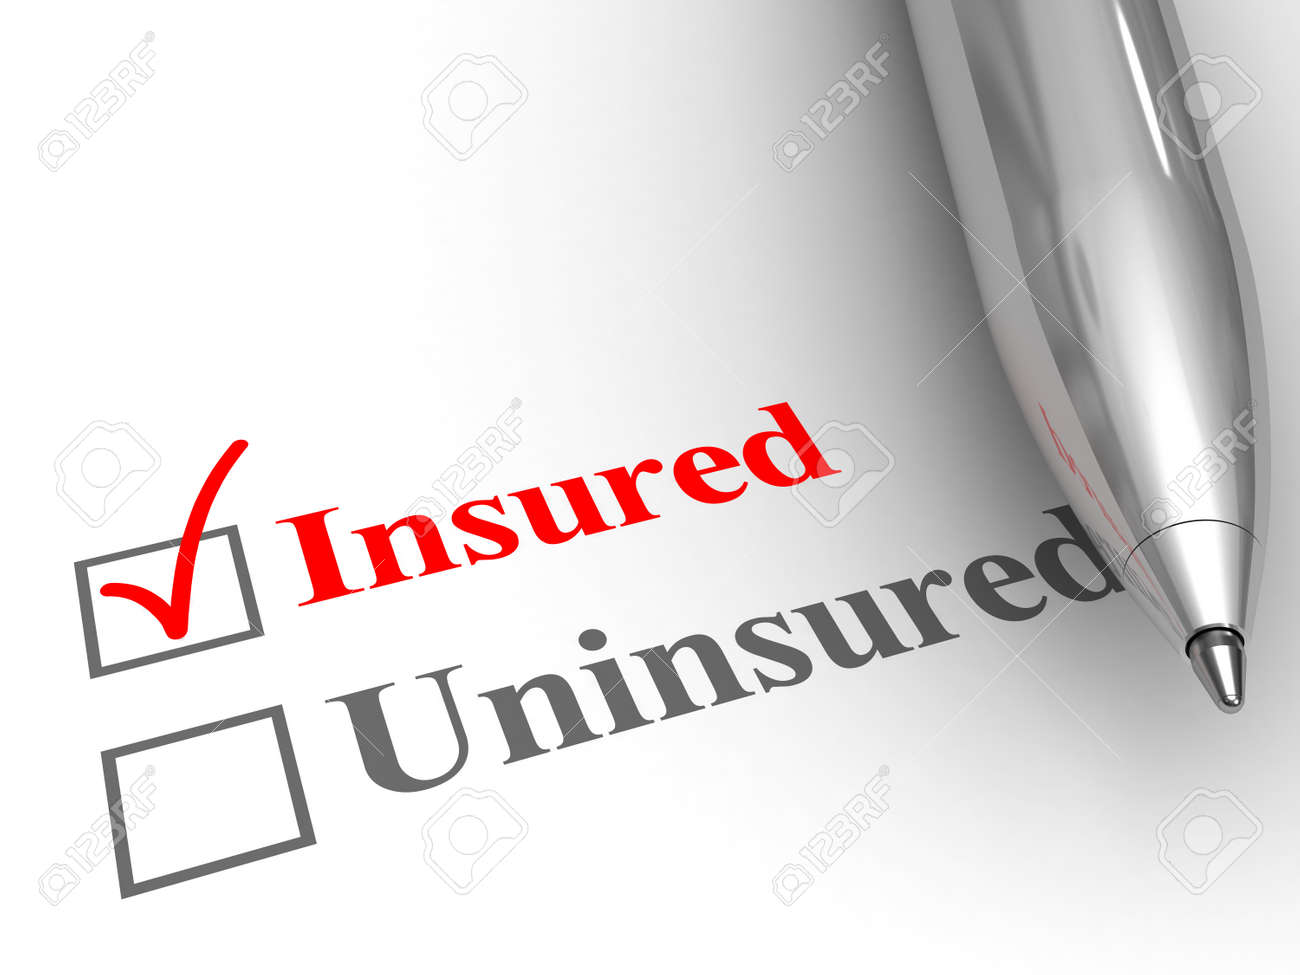 Insured status. Pen on form to answer if you are covered by an insurance policy for medical, auto, homeowner, life protection or another, with insured checked. - 53002535